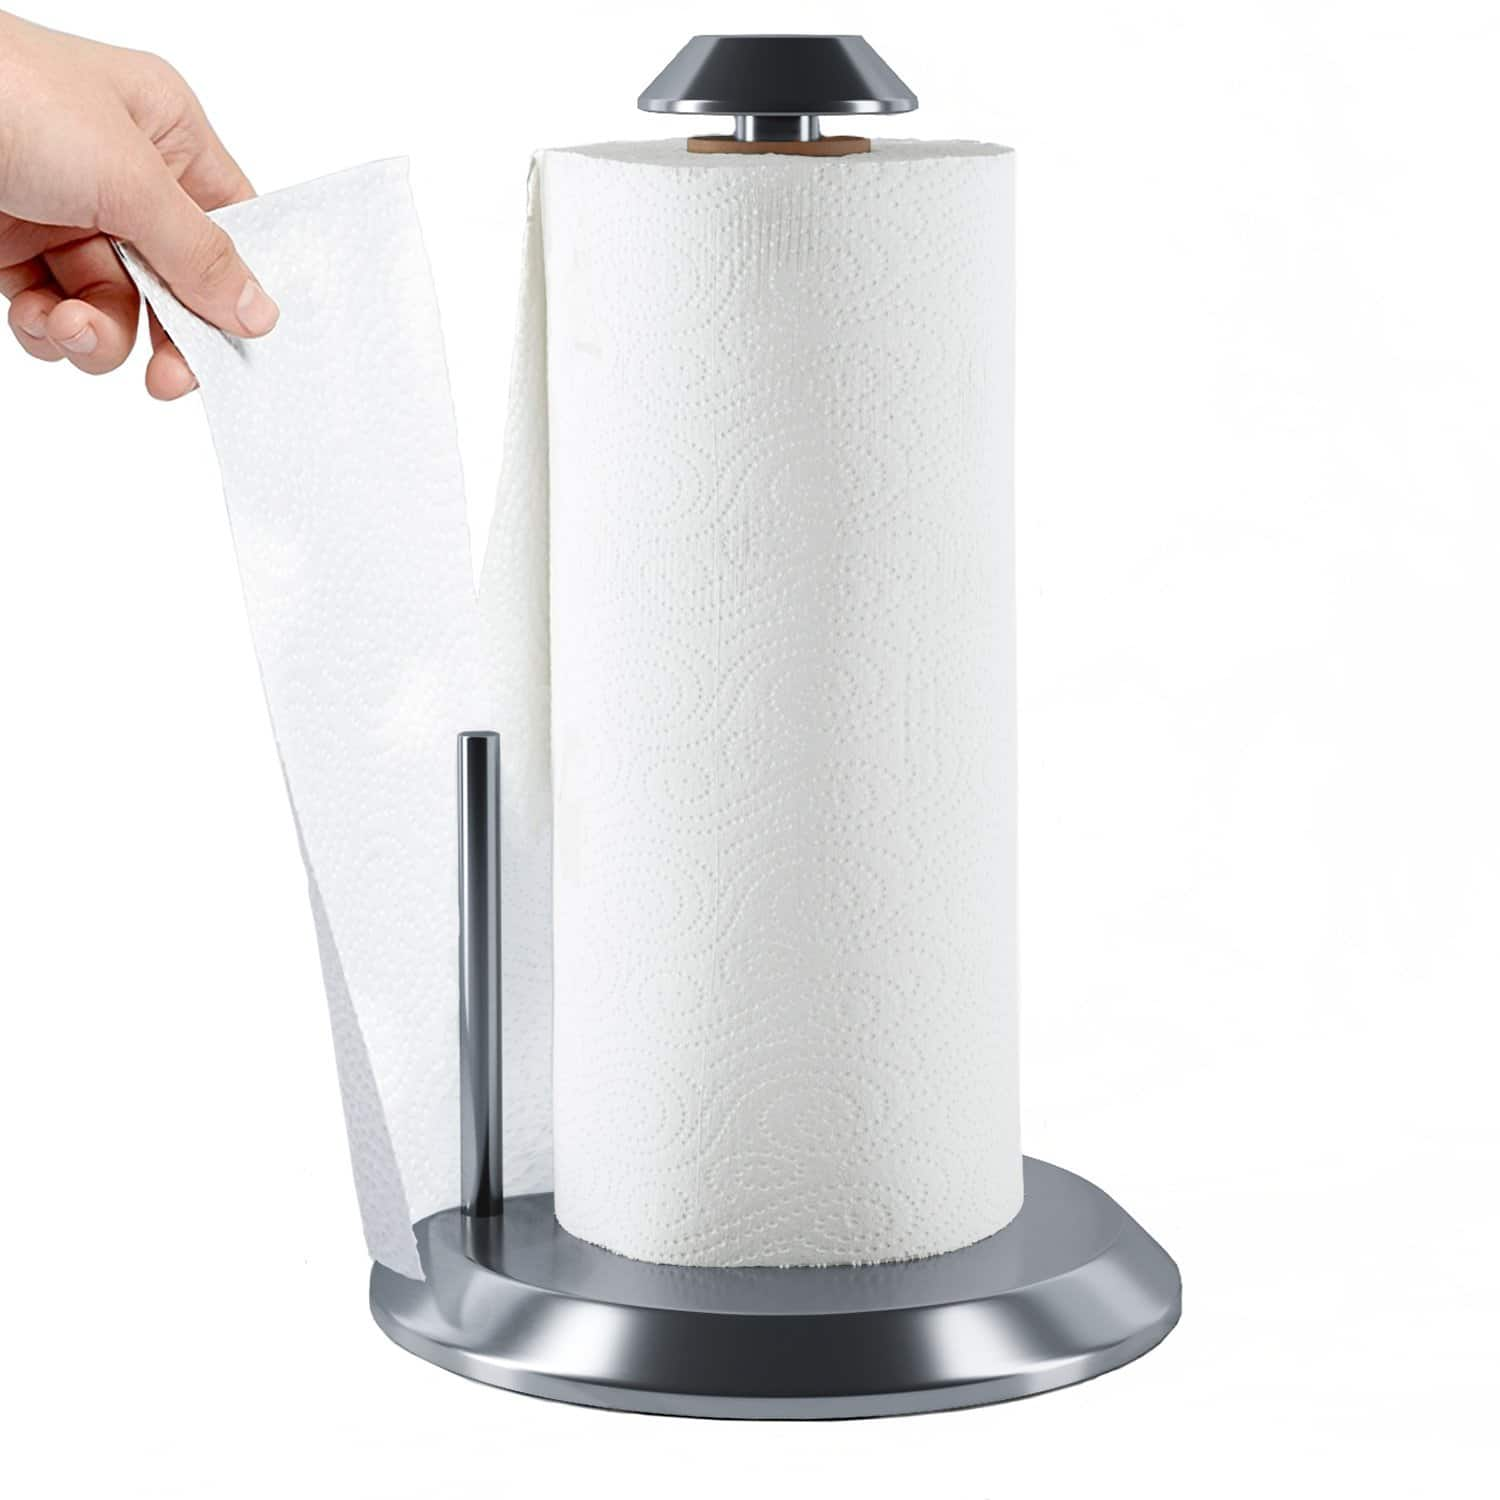 35% Off Home Intuition Stainless Steel Paper Towel Holder w/ Easy One Hand Access $12.97